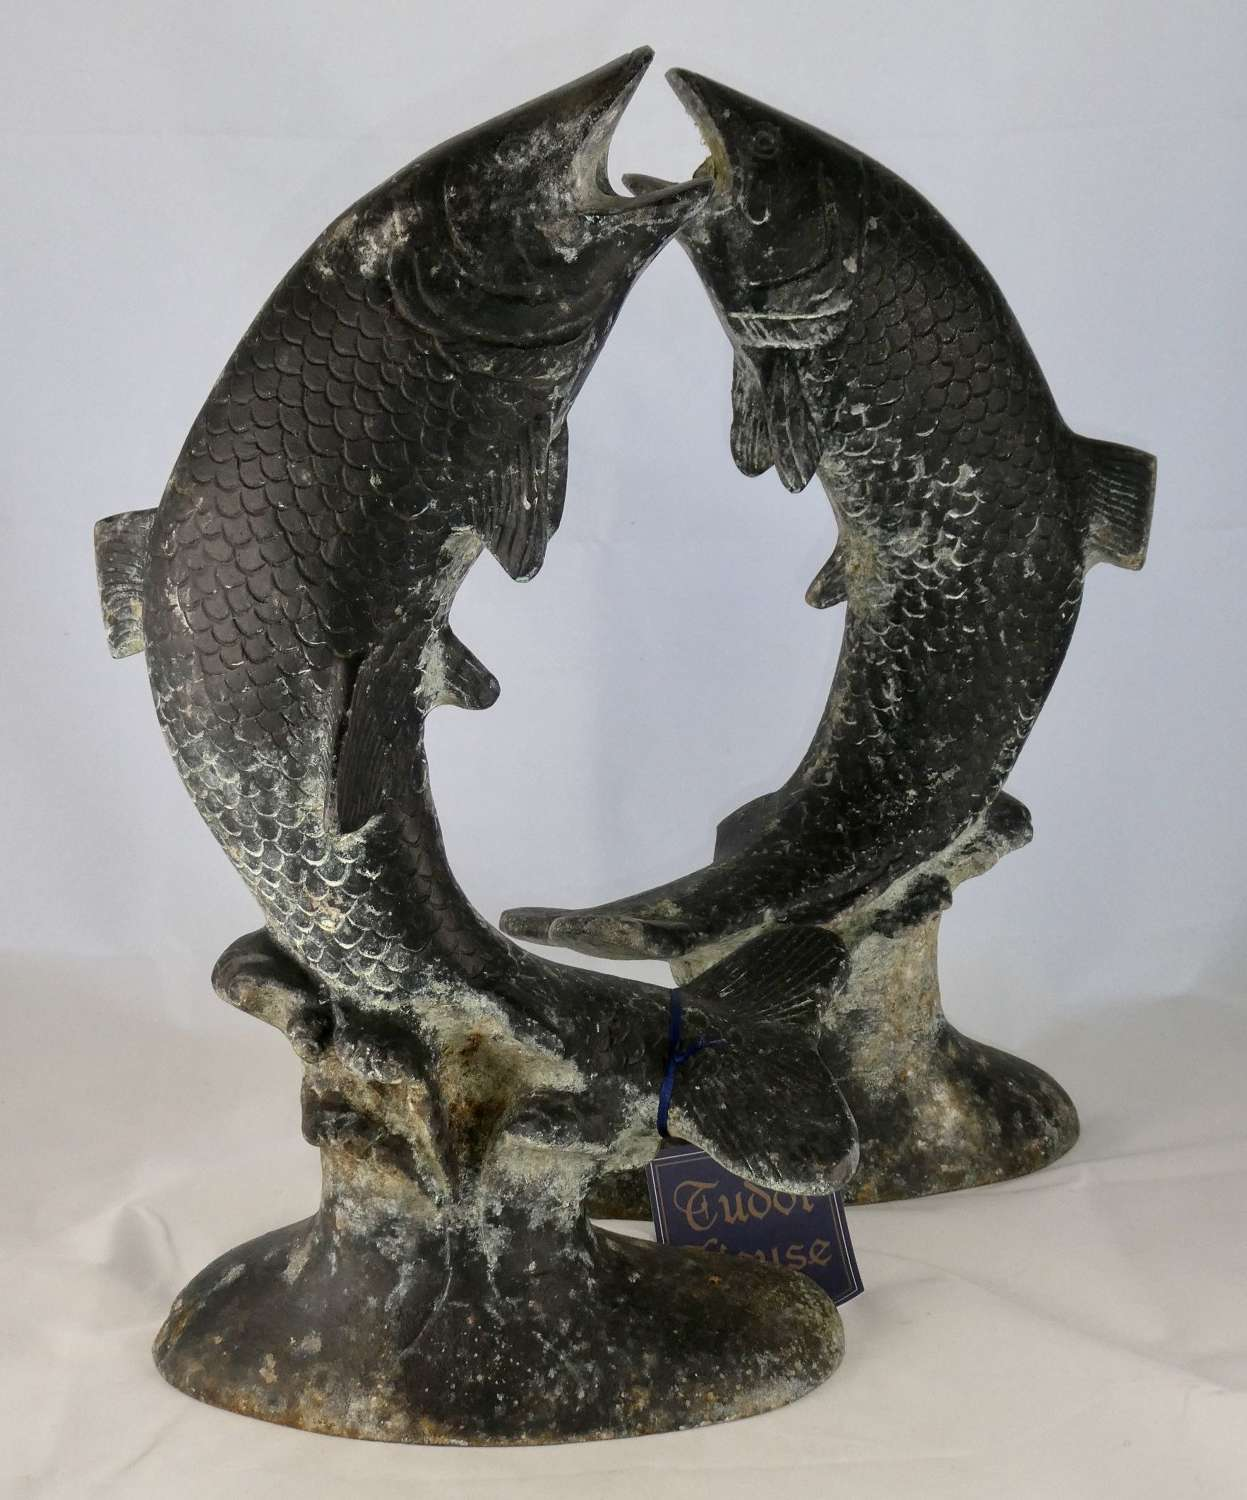 Pair of Fish Fountains